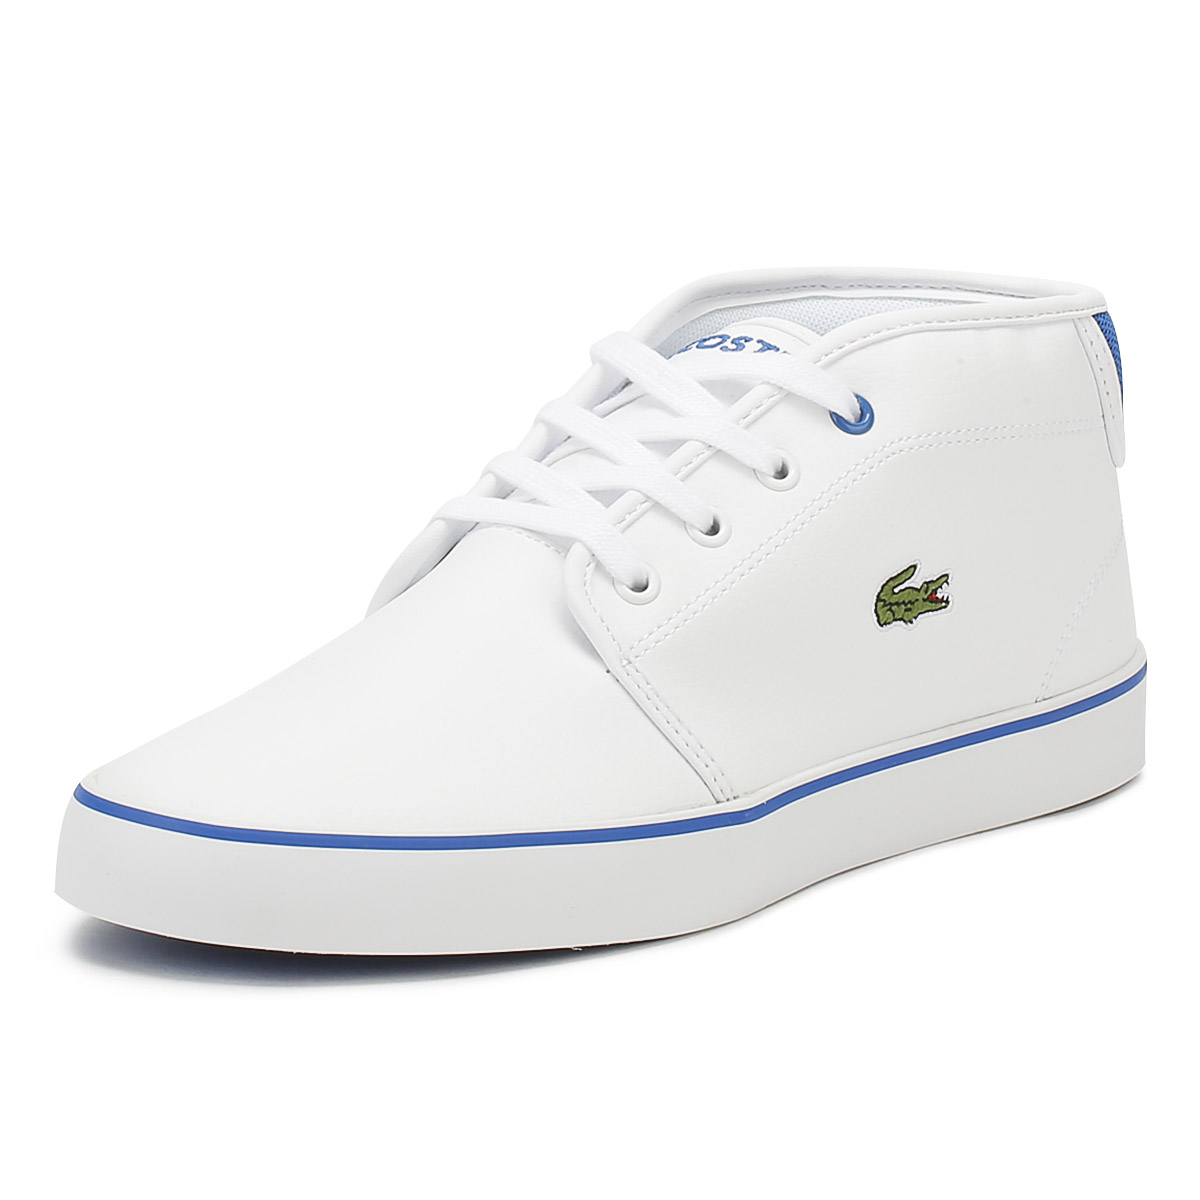 c5591e7fd Lacoste Junior Trainers White  Blue AMPTHILL 118 1 Kids Leather Casual Shoes